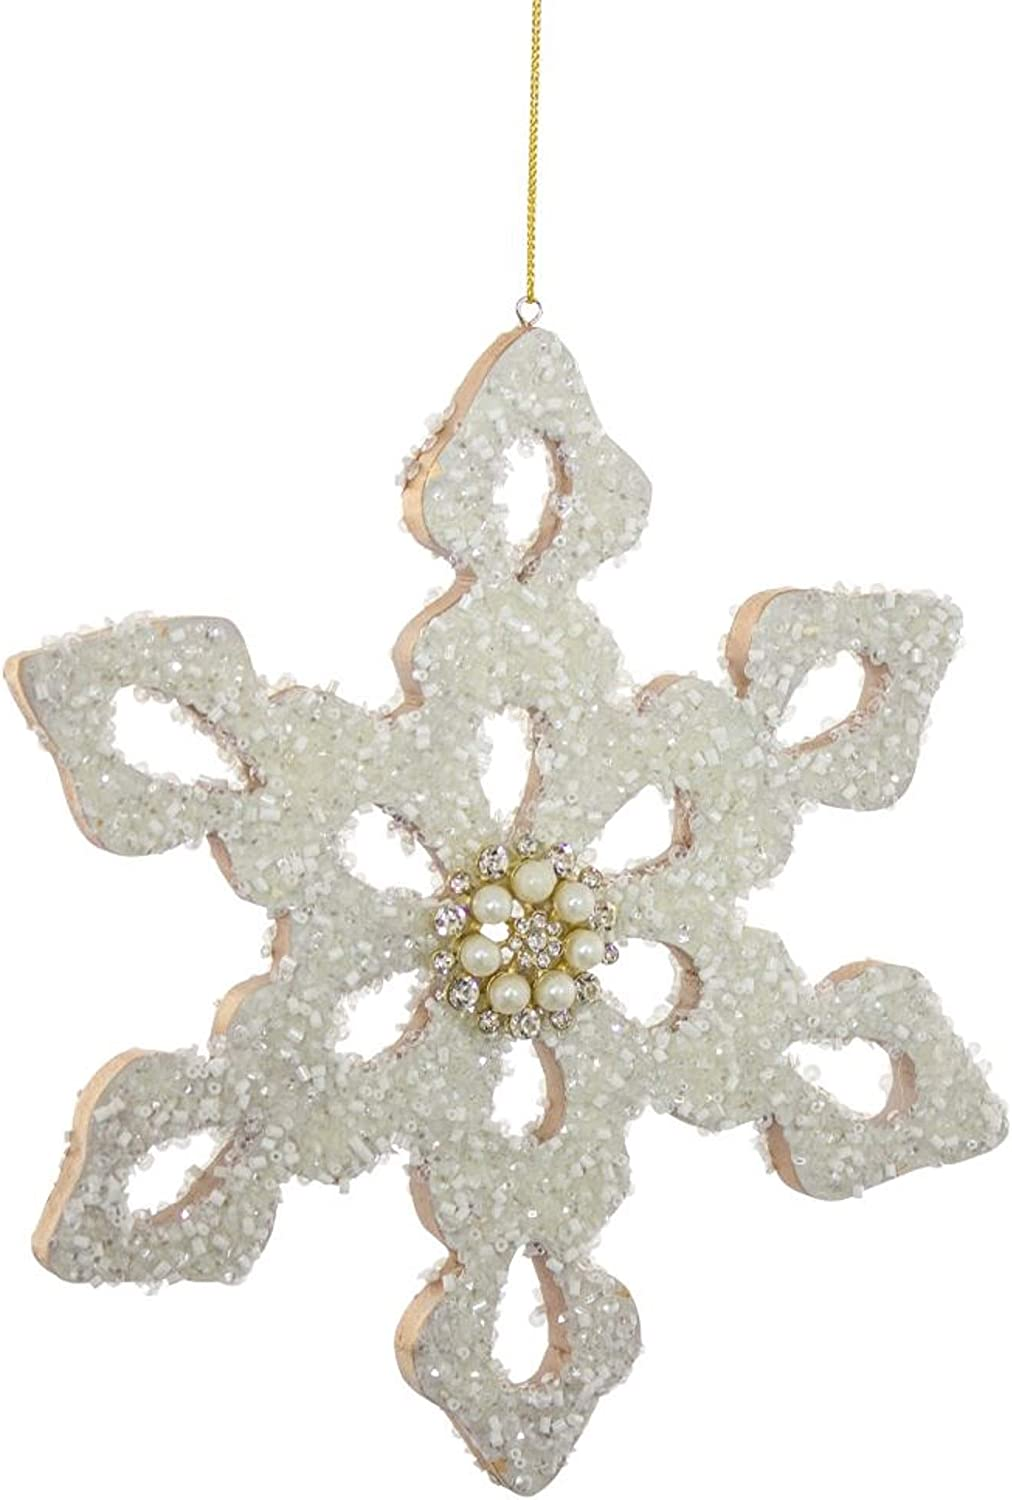 """Diva At Home 7.5"""" White Glittery Finish Snowflake Wall Hanging Christmas Ornament"""